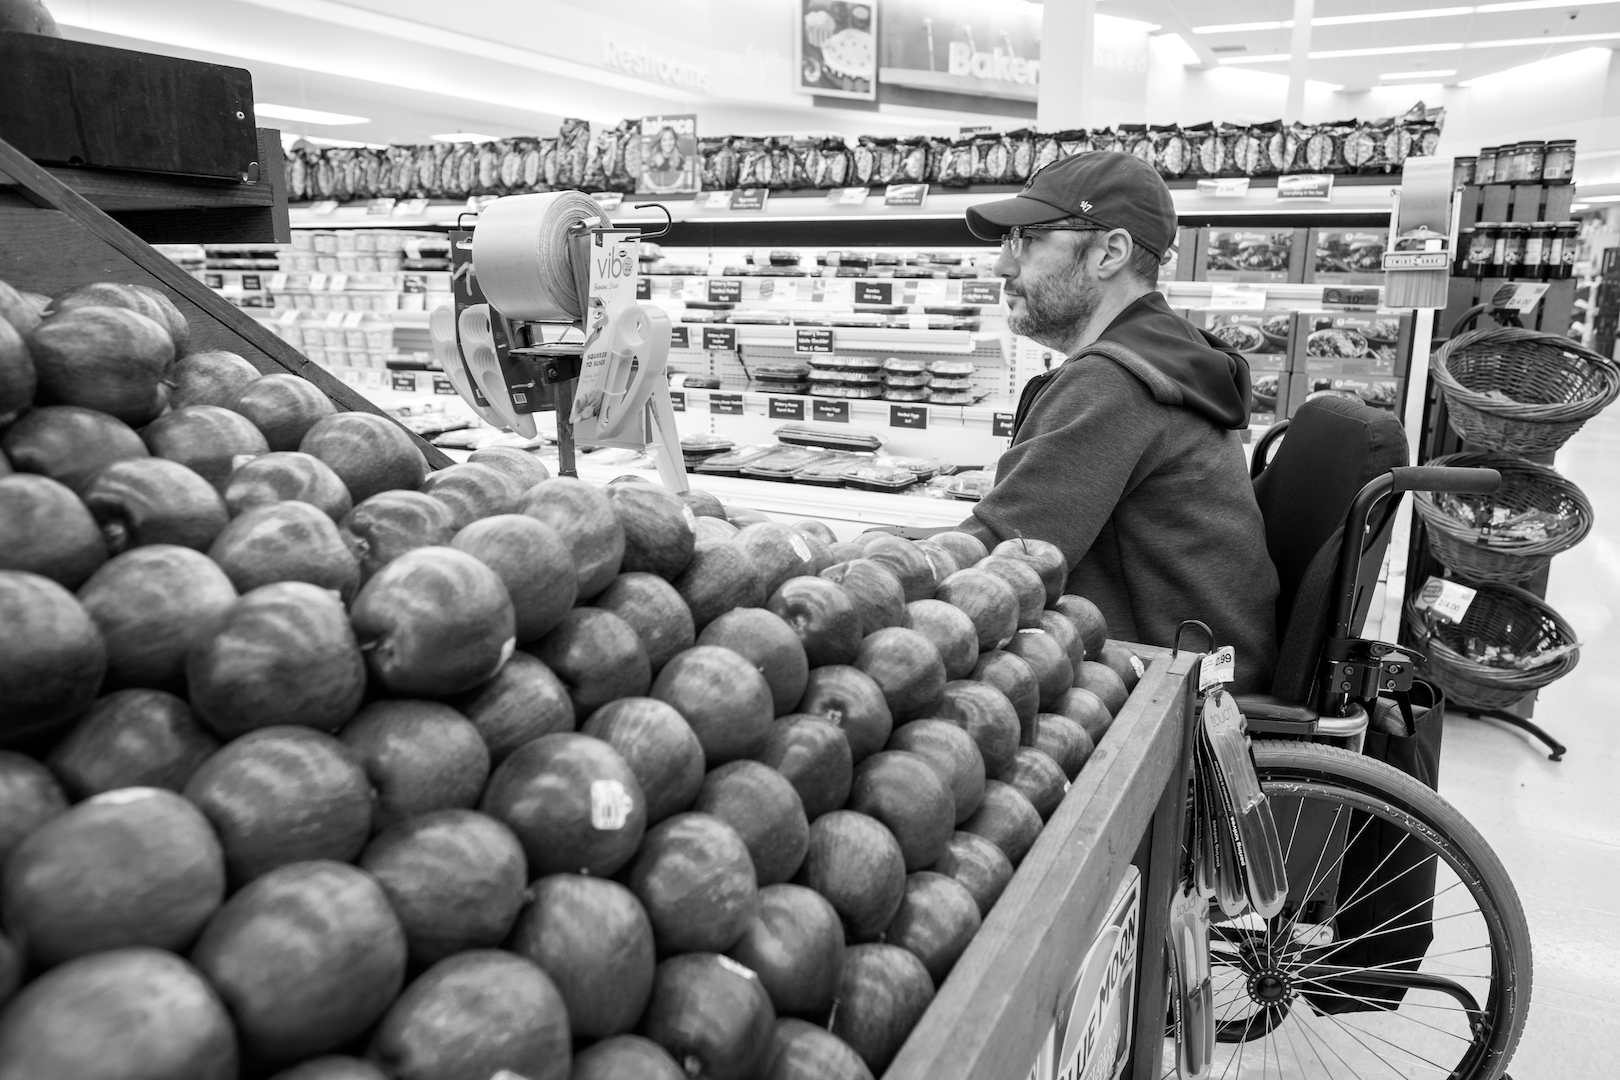 Mike works on functional life skills at a local grocery store.